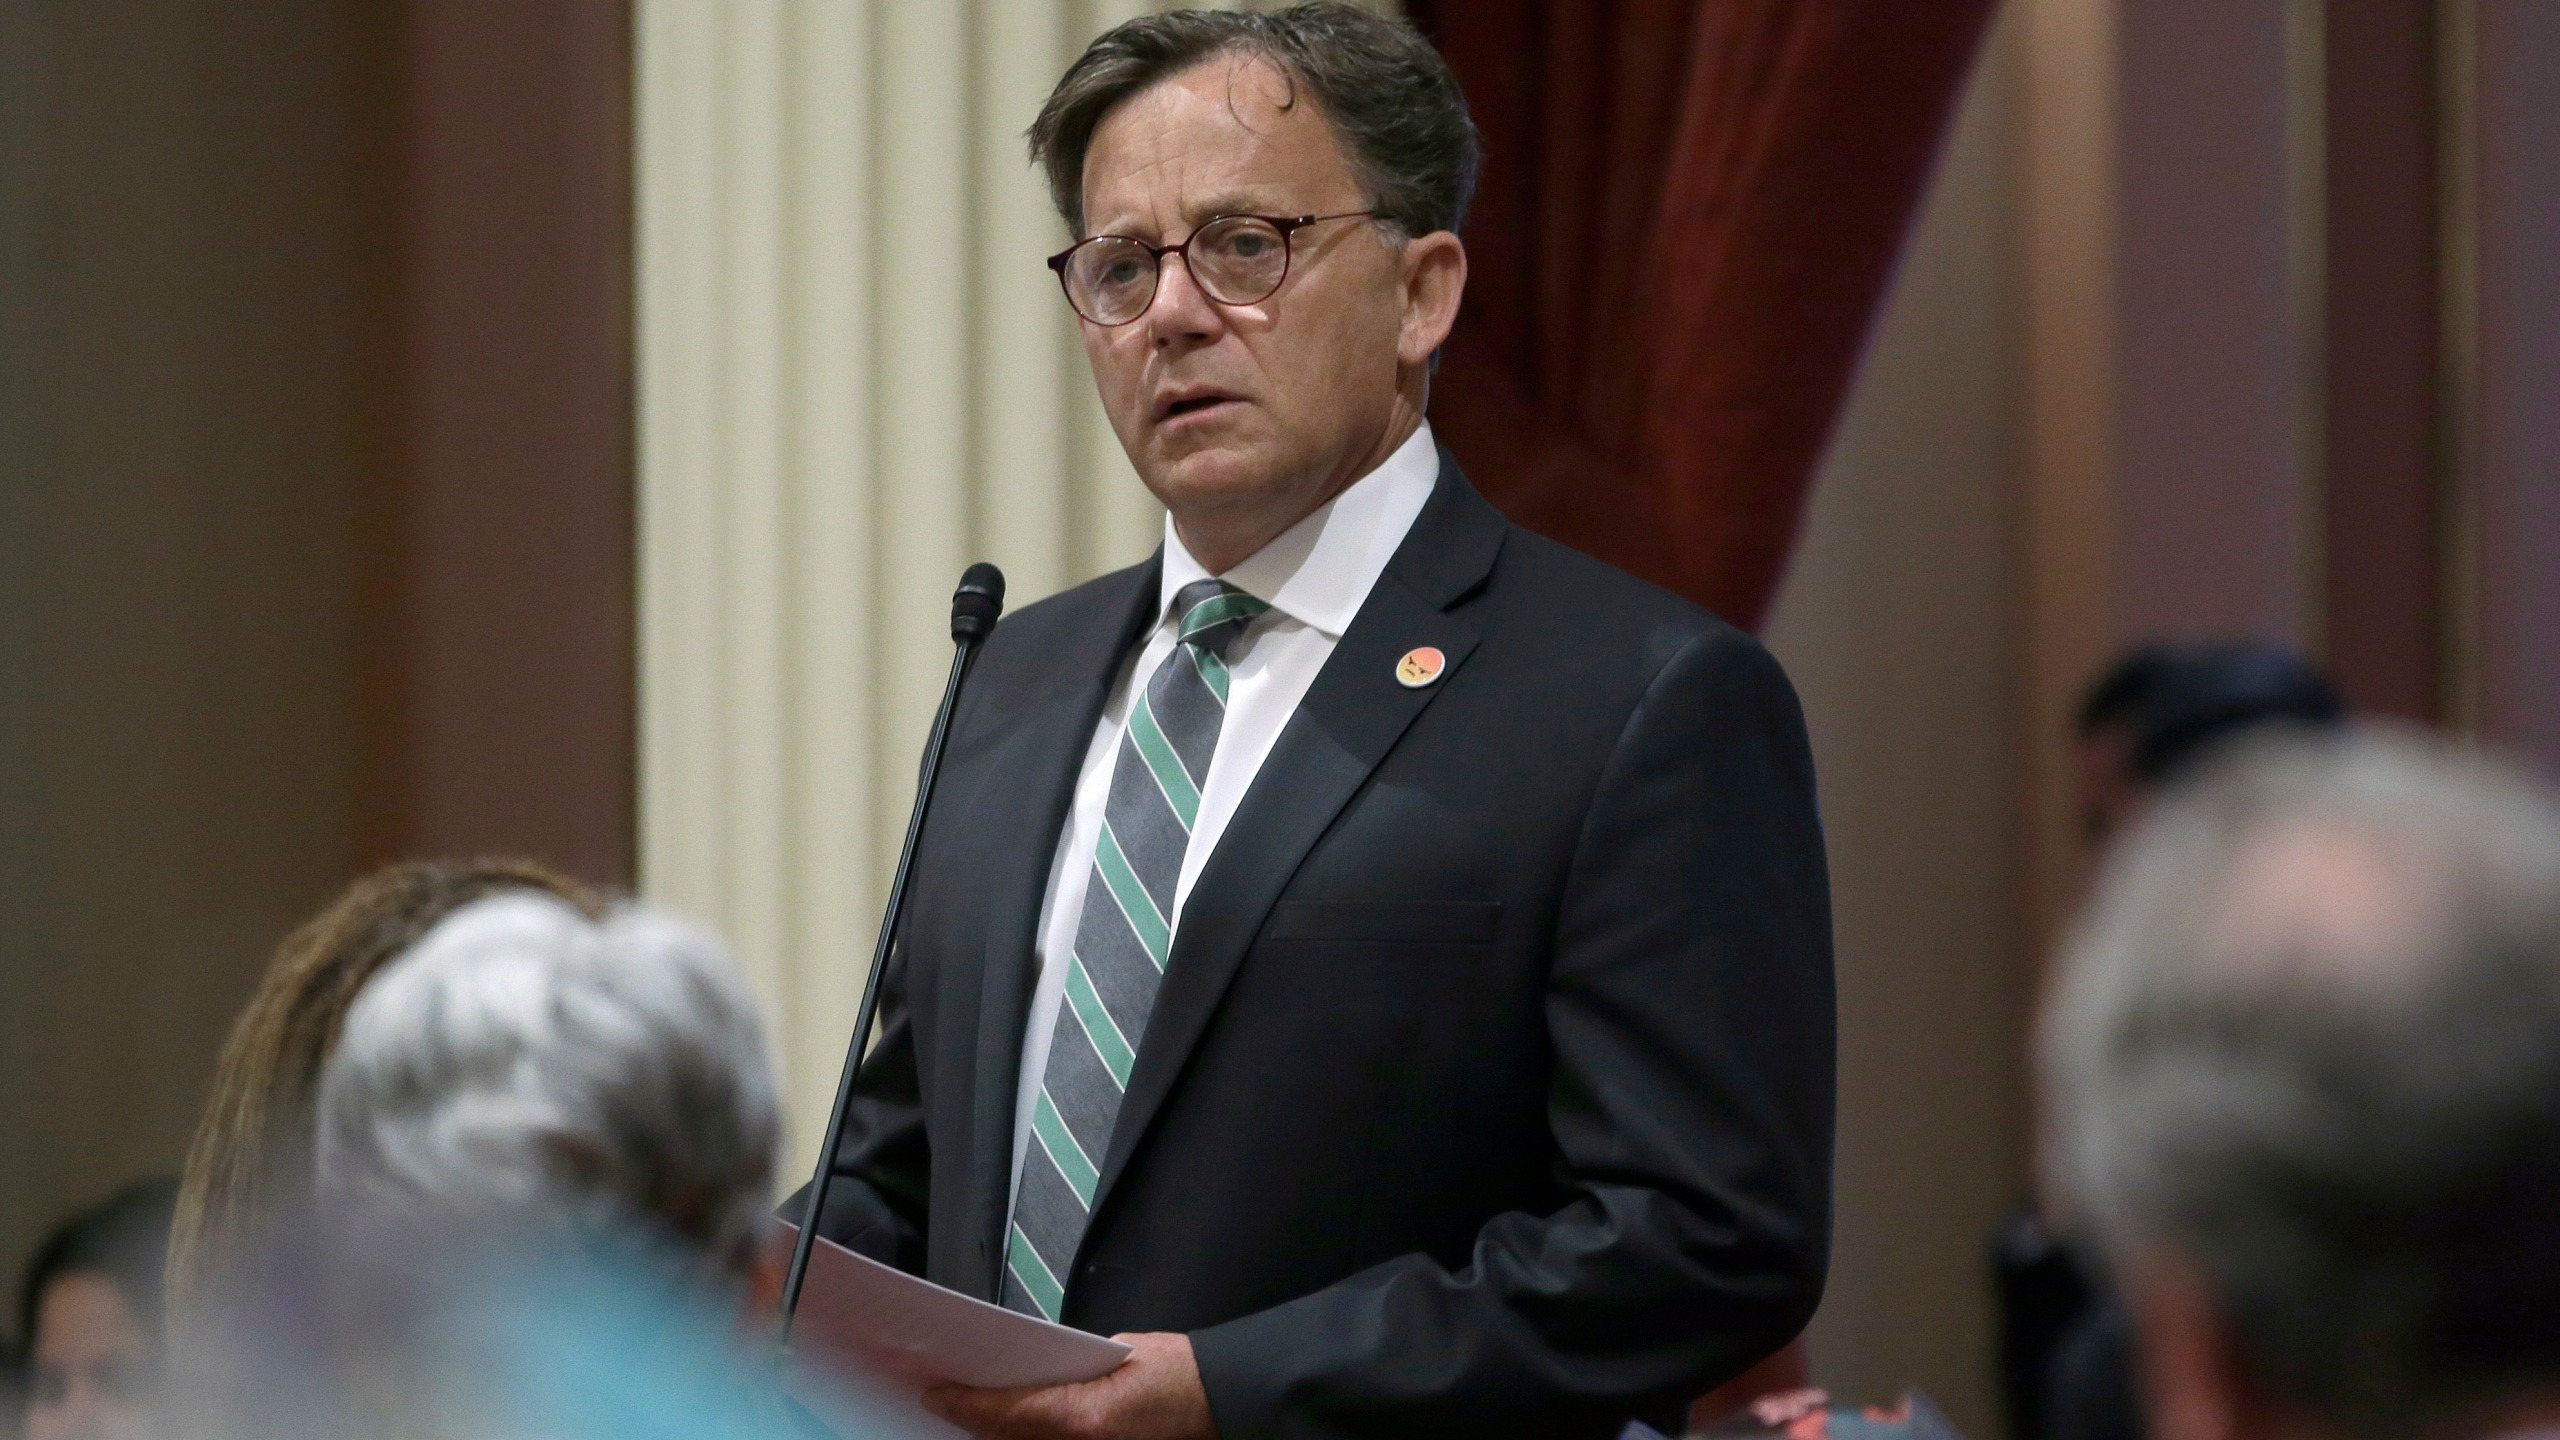 California state Sen. Josh Newman, D-Fullerton, discusses the recall election against him during a Senate session in Sacramento on June 11, 2018. Newman was recalled in 2018 before winning re-election in 2020. (Rich Pedroncelli / Associated Press)